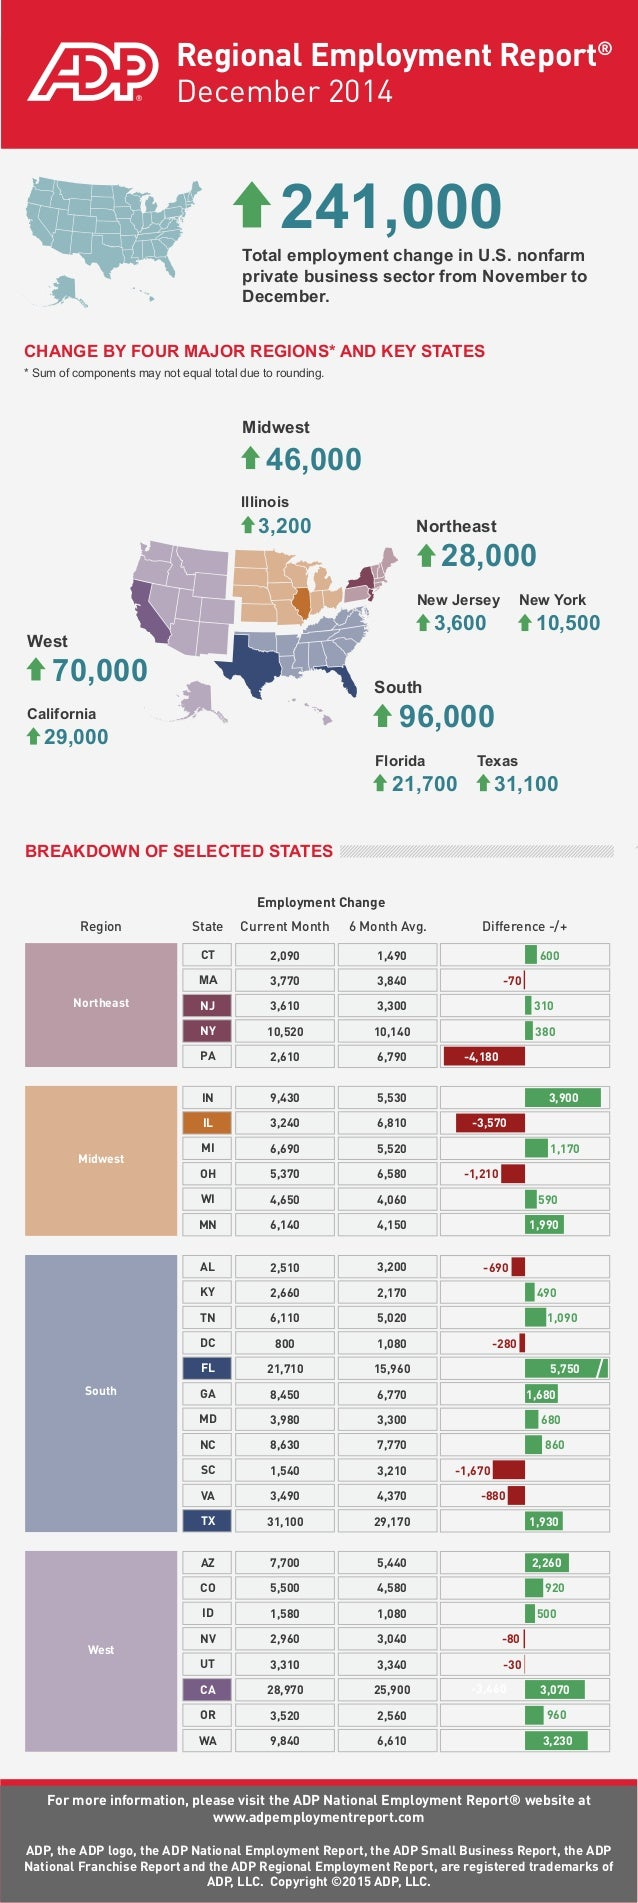 ADP Regional Employment Report: December 2014